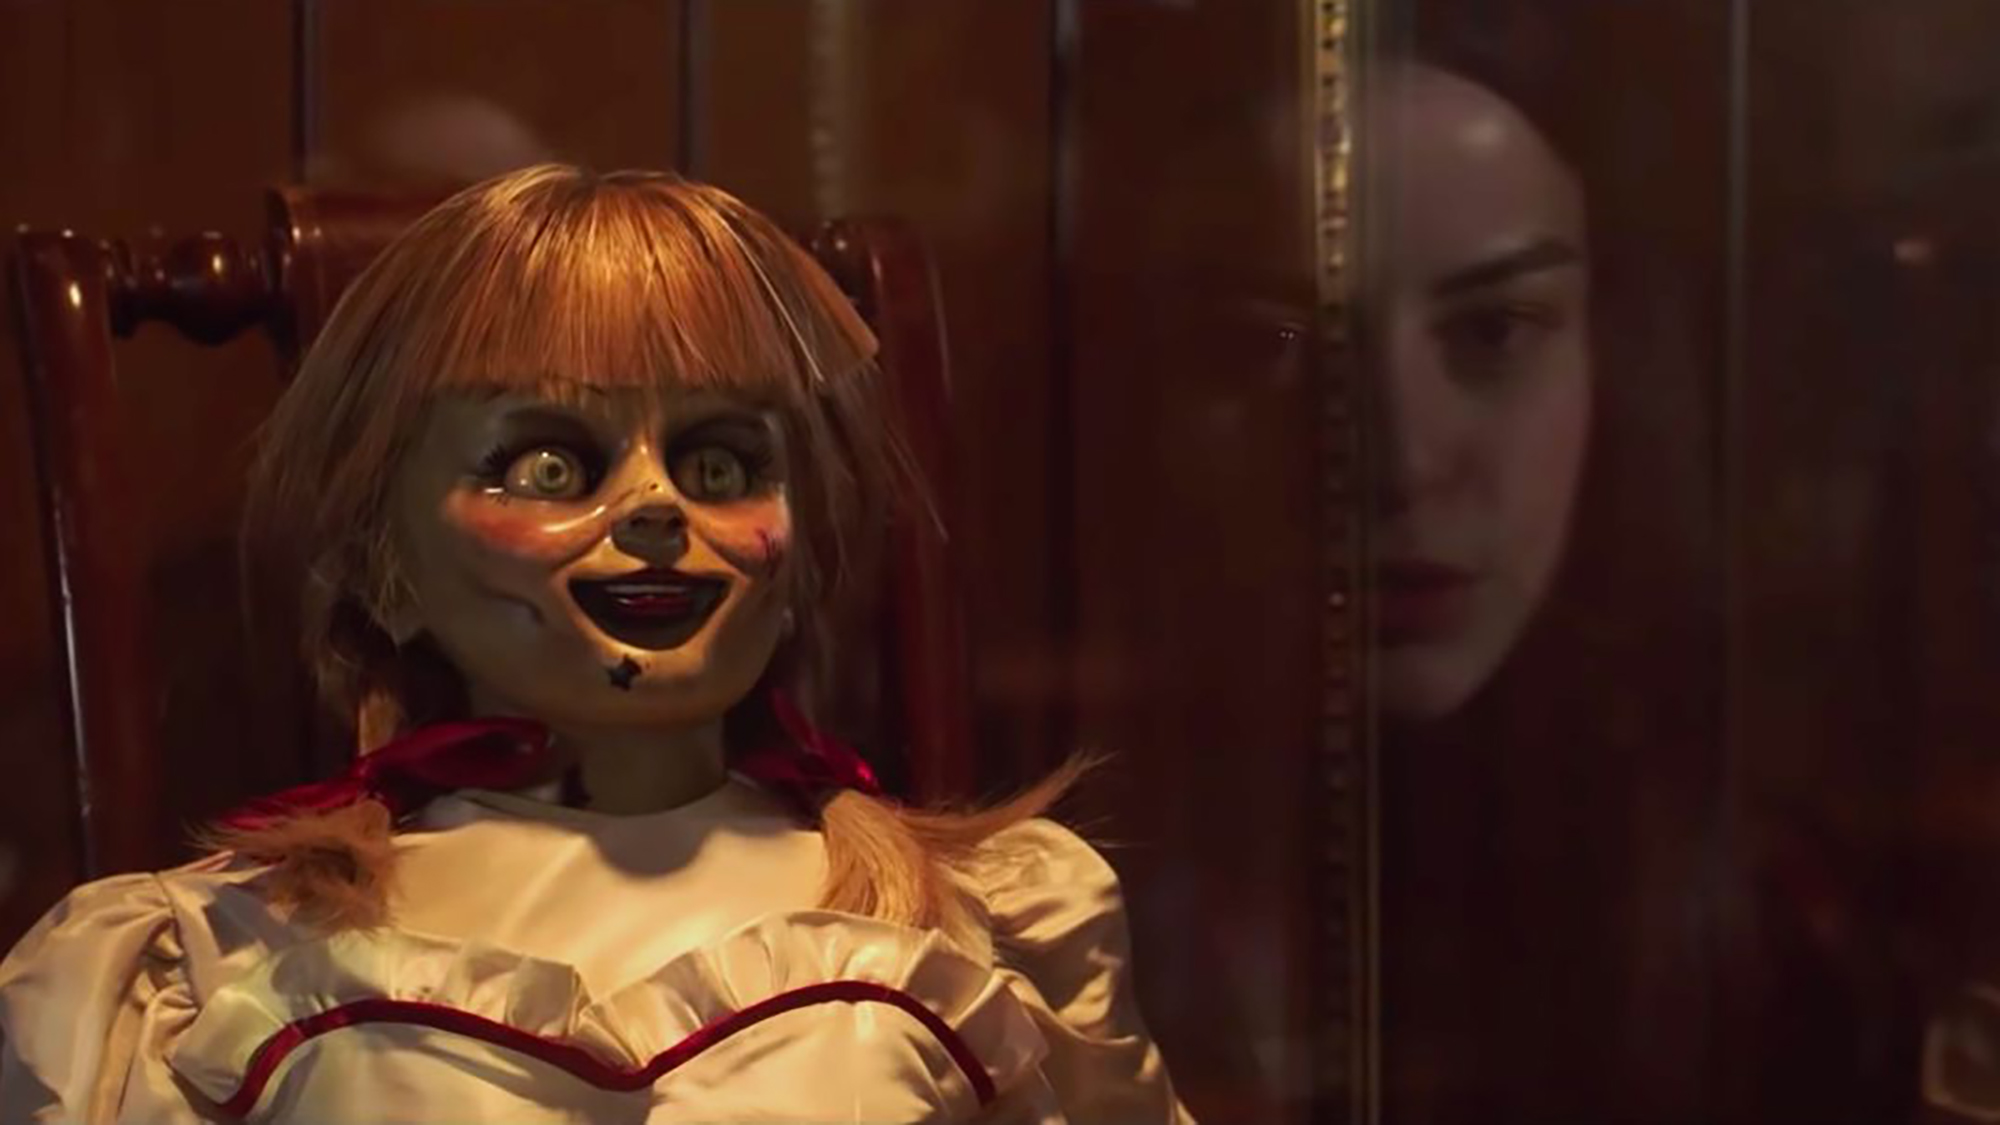 Anabelle Comes Home Image #2.jpg